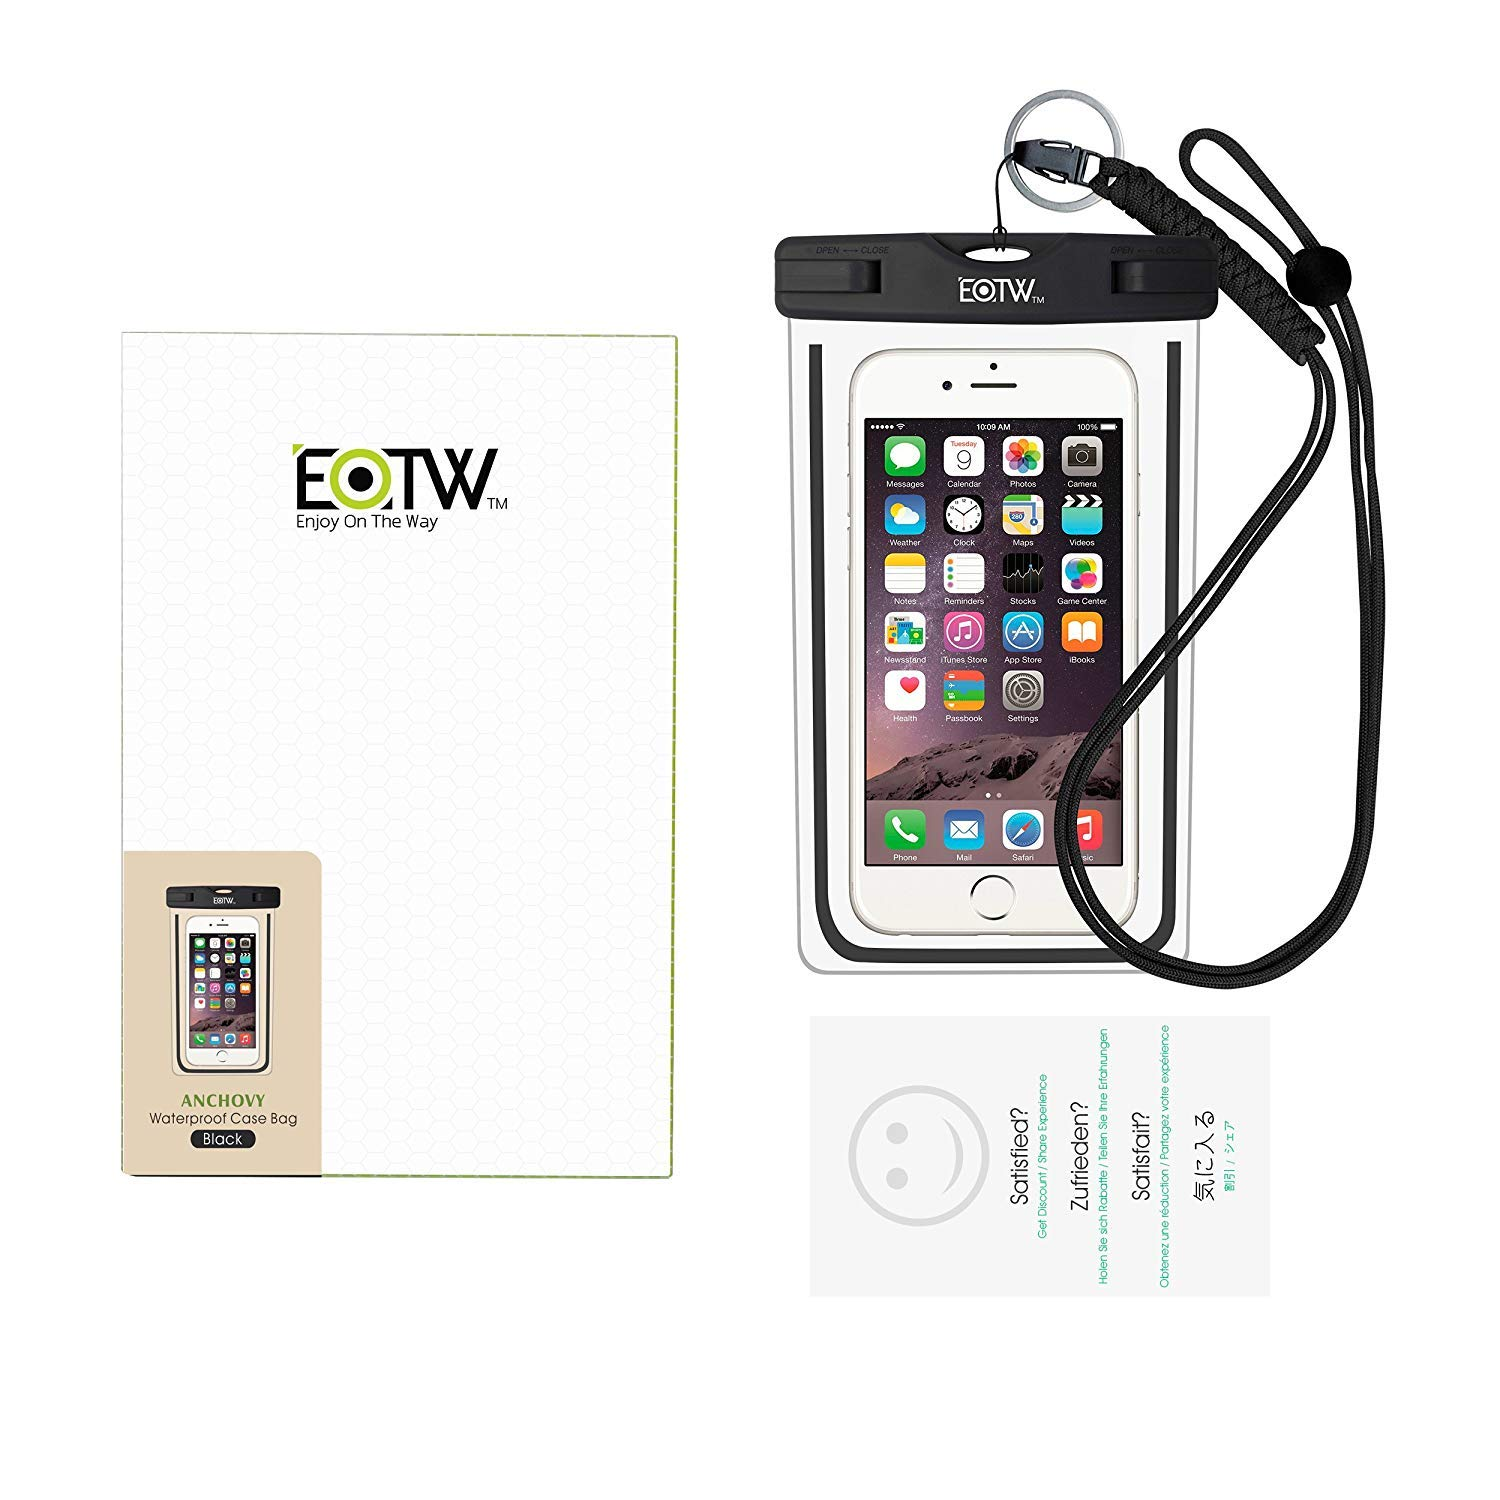 EOTW 2 Pack IPX8 Universal Waterproof Case for Smartphone Device to 6'' Fit iPhone X/8/8plus 7plus/6plus Samsung Galaxy s8/s8plus/s7 Google Pixel HTC10,for Water Parks/Beach/Cruise/Pools snorkeling by EOTW (Image #7)